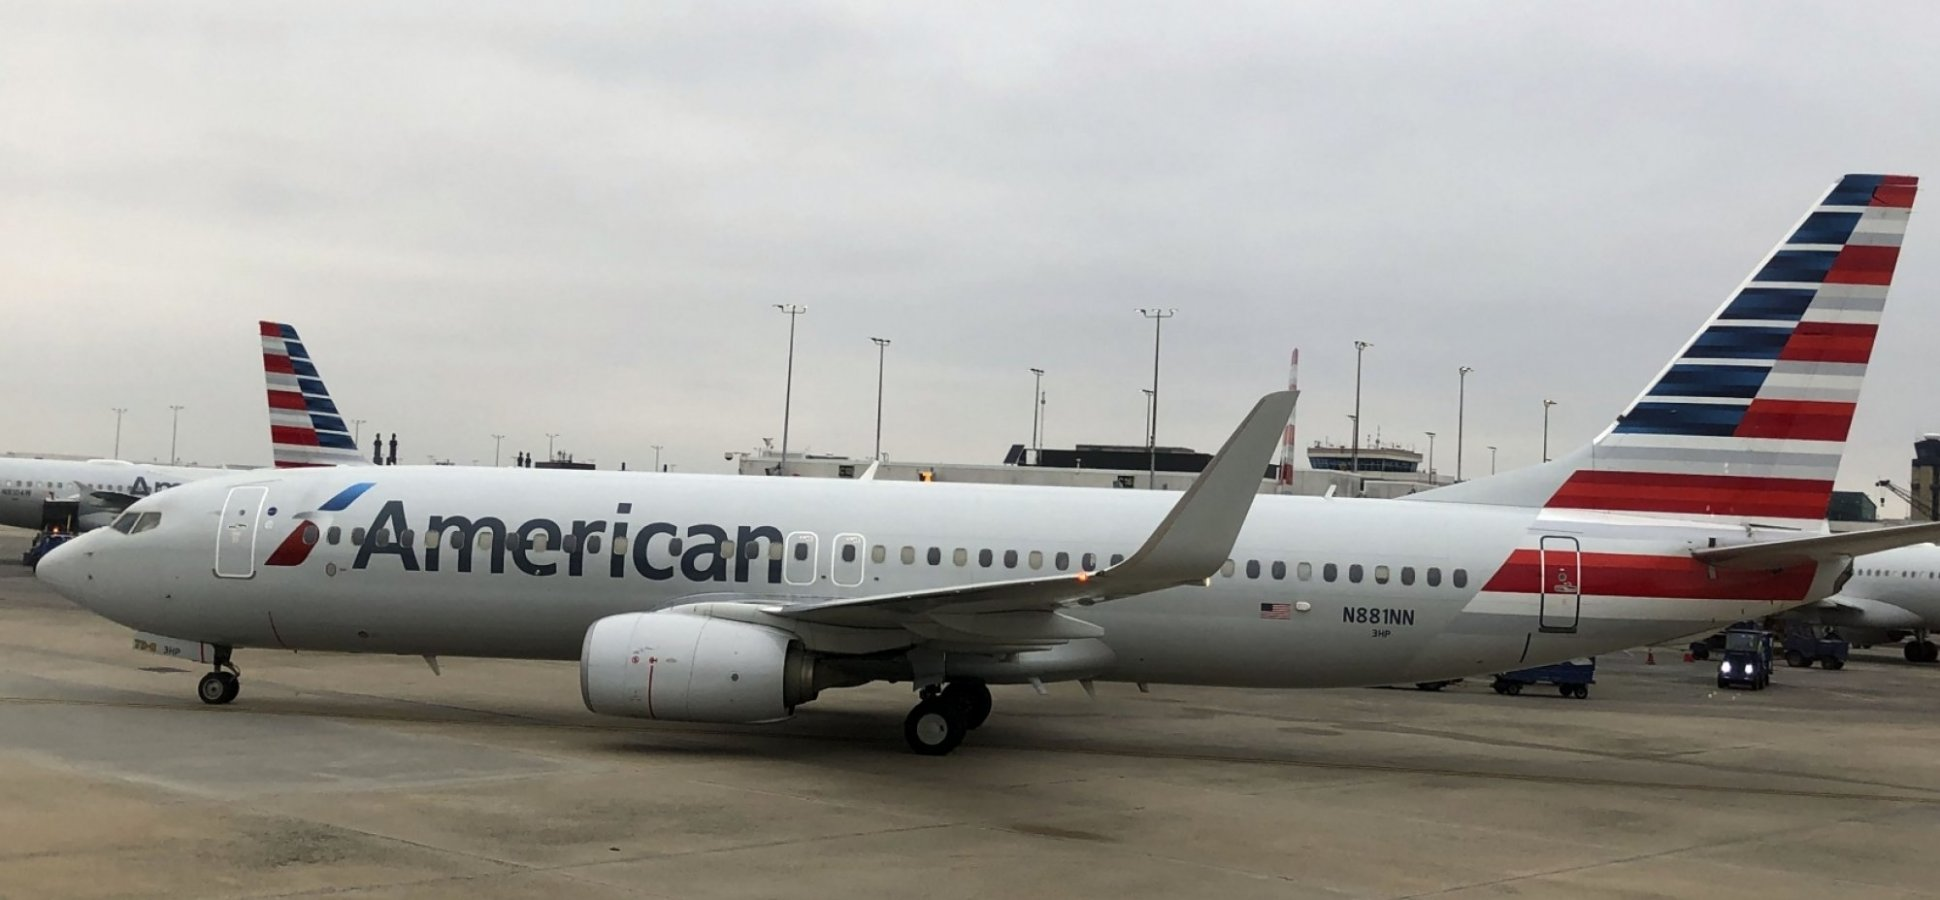 American Airlines Just Made a Shocking Admission That'll Make Passengers Truly Worried (If They Weren't Already)